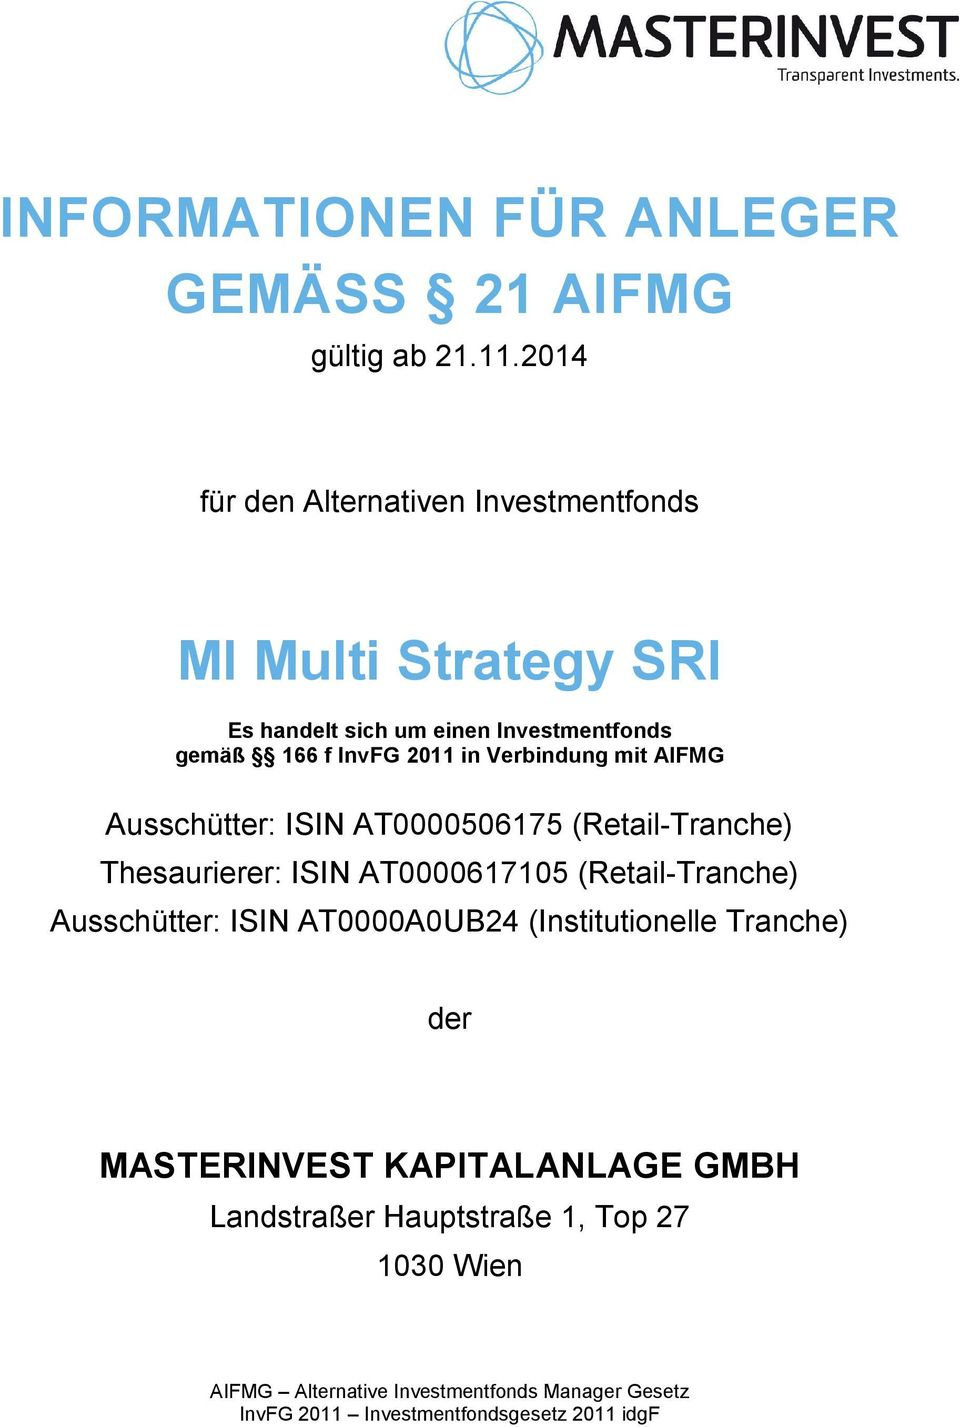 AIFMG Ausschütter: ISIN AT0000506175 (Retail-Tranche) Thesaurierer: ISIN AT0000617105 (Retail-Tranche) Ausschütter: ISIN